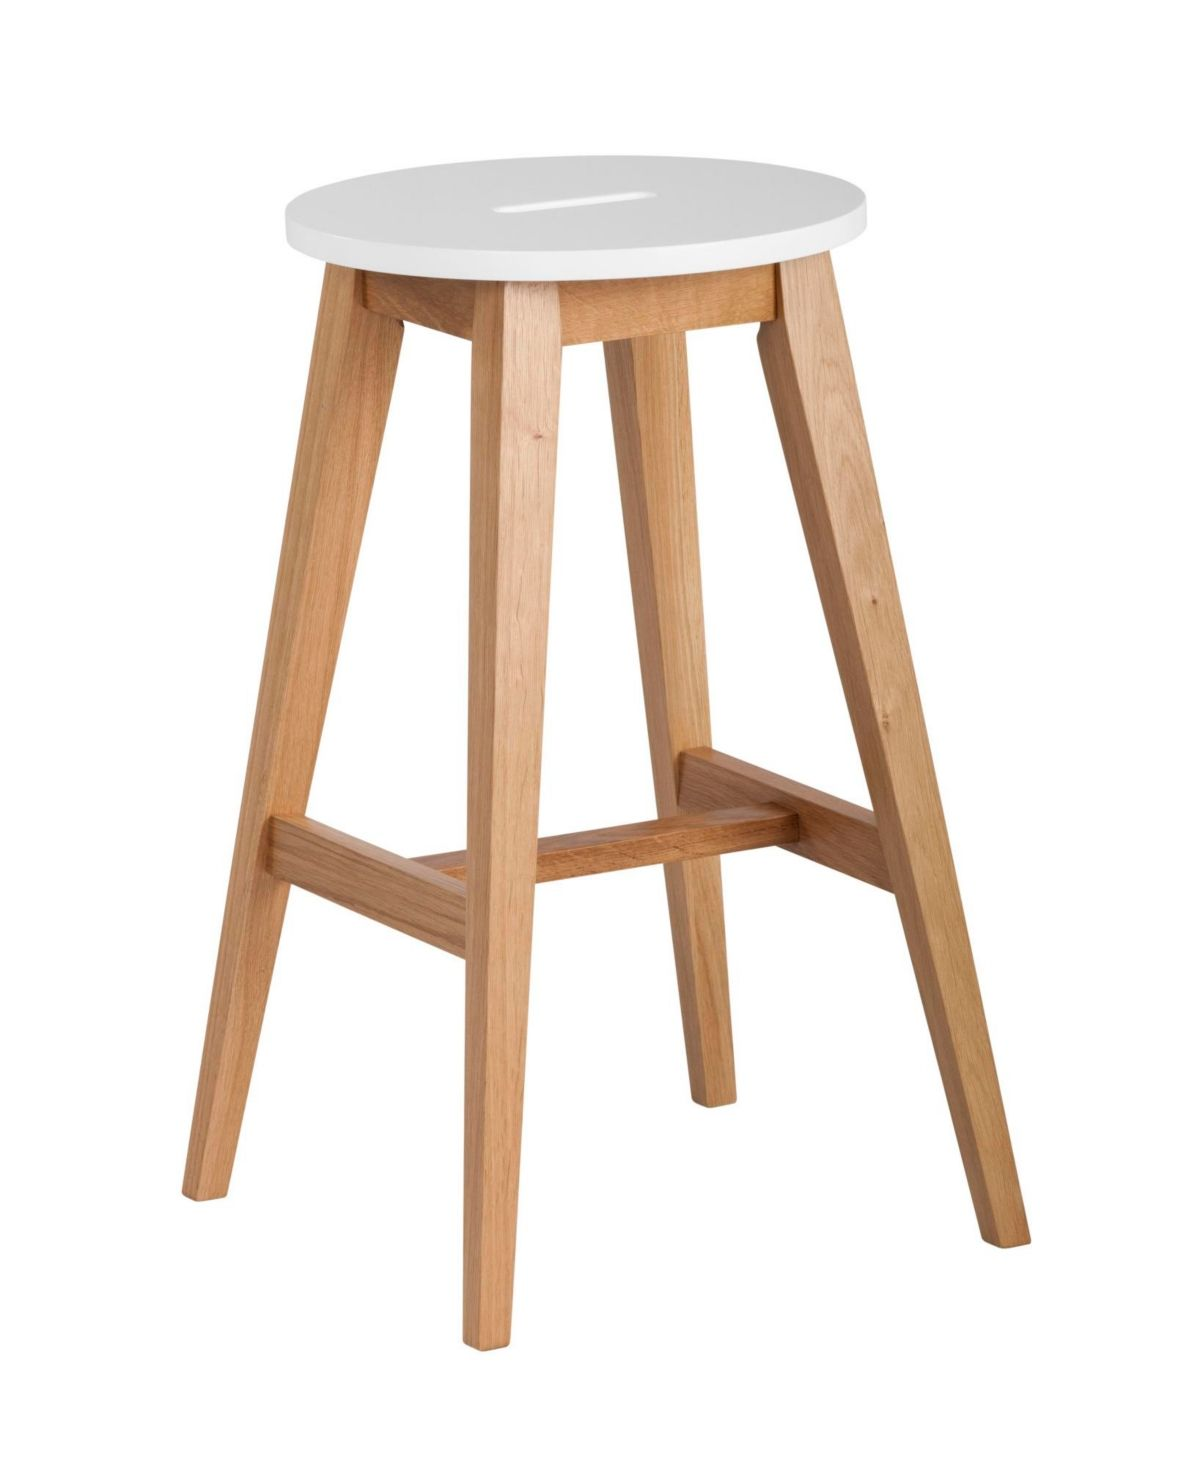 Abacus Counter Stool Quick Ship White Stool Counter Stools Wood Counter Stools